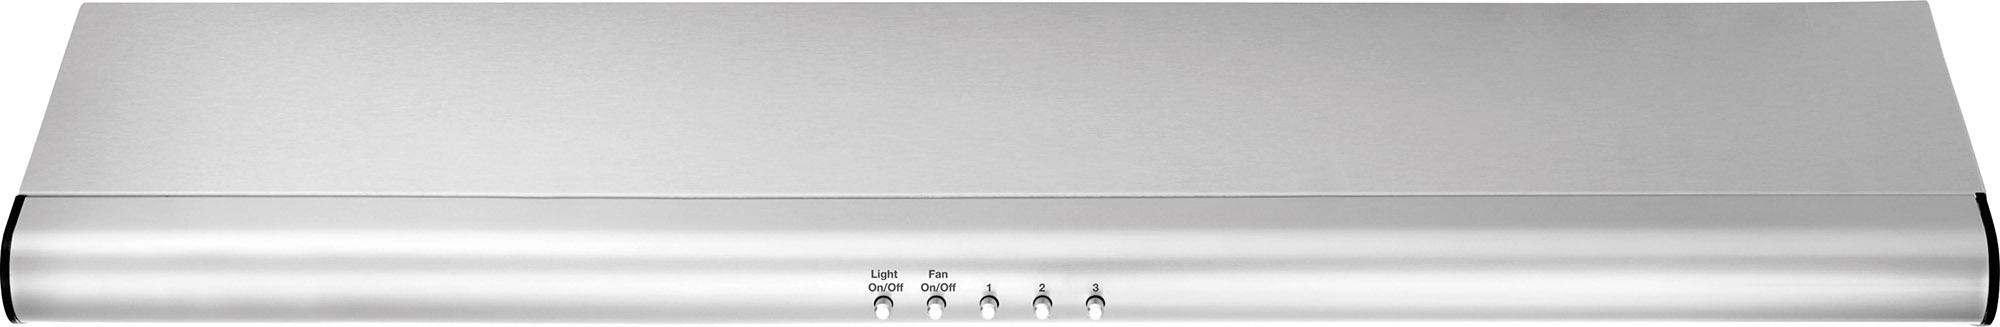 "Frigidaire Ventilation 30"" Under-the-Cabinet Range Hood - Item Number: FHWC3040MS"